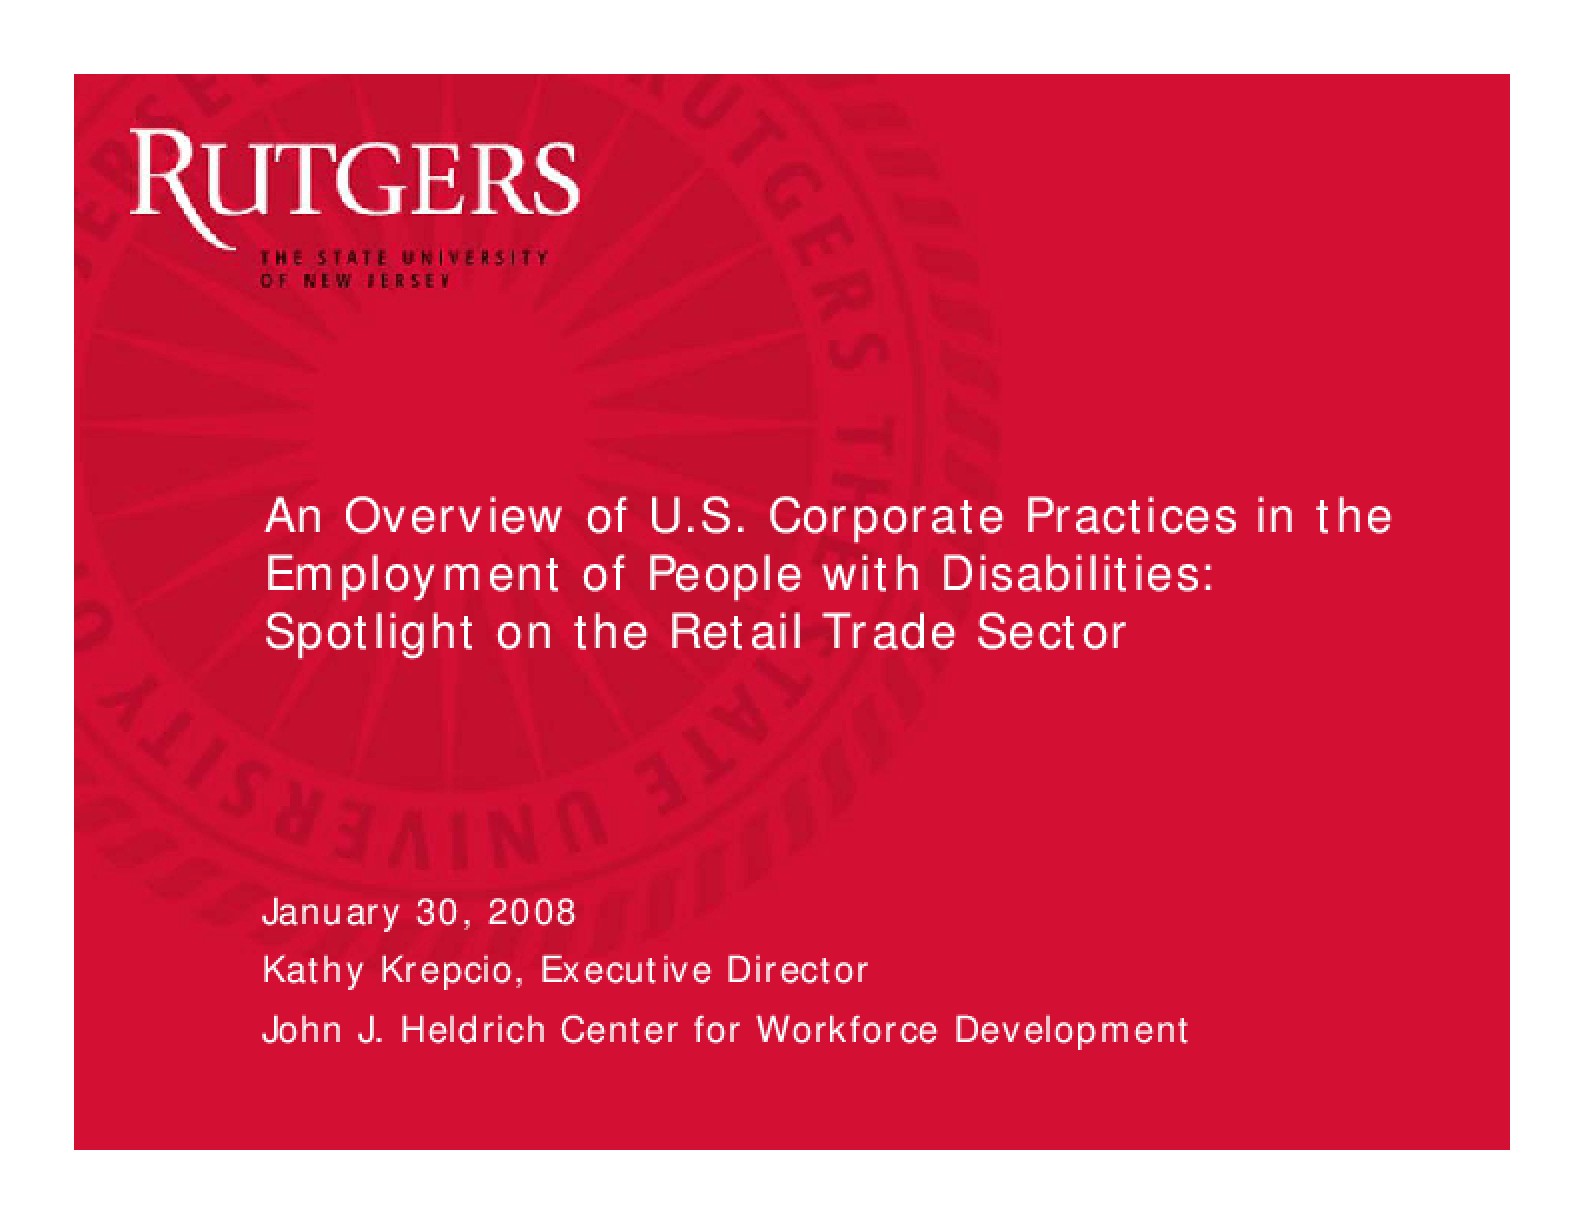 Overview of U.S. Corporate Practices in the Employment of People with Disabilities (presentation)